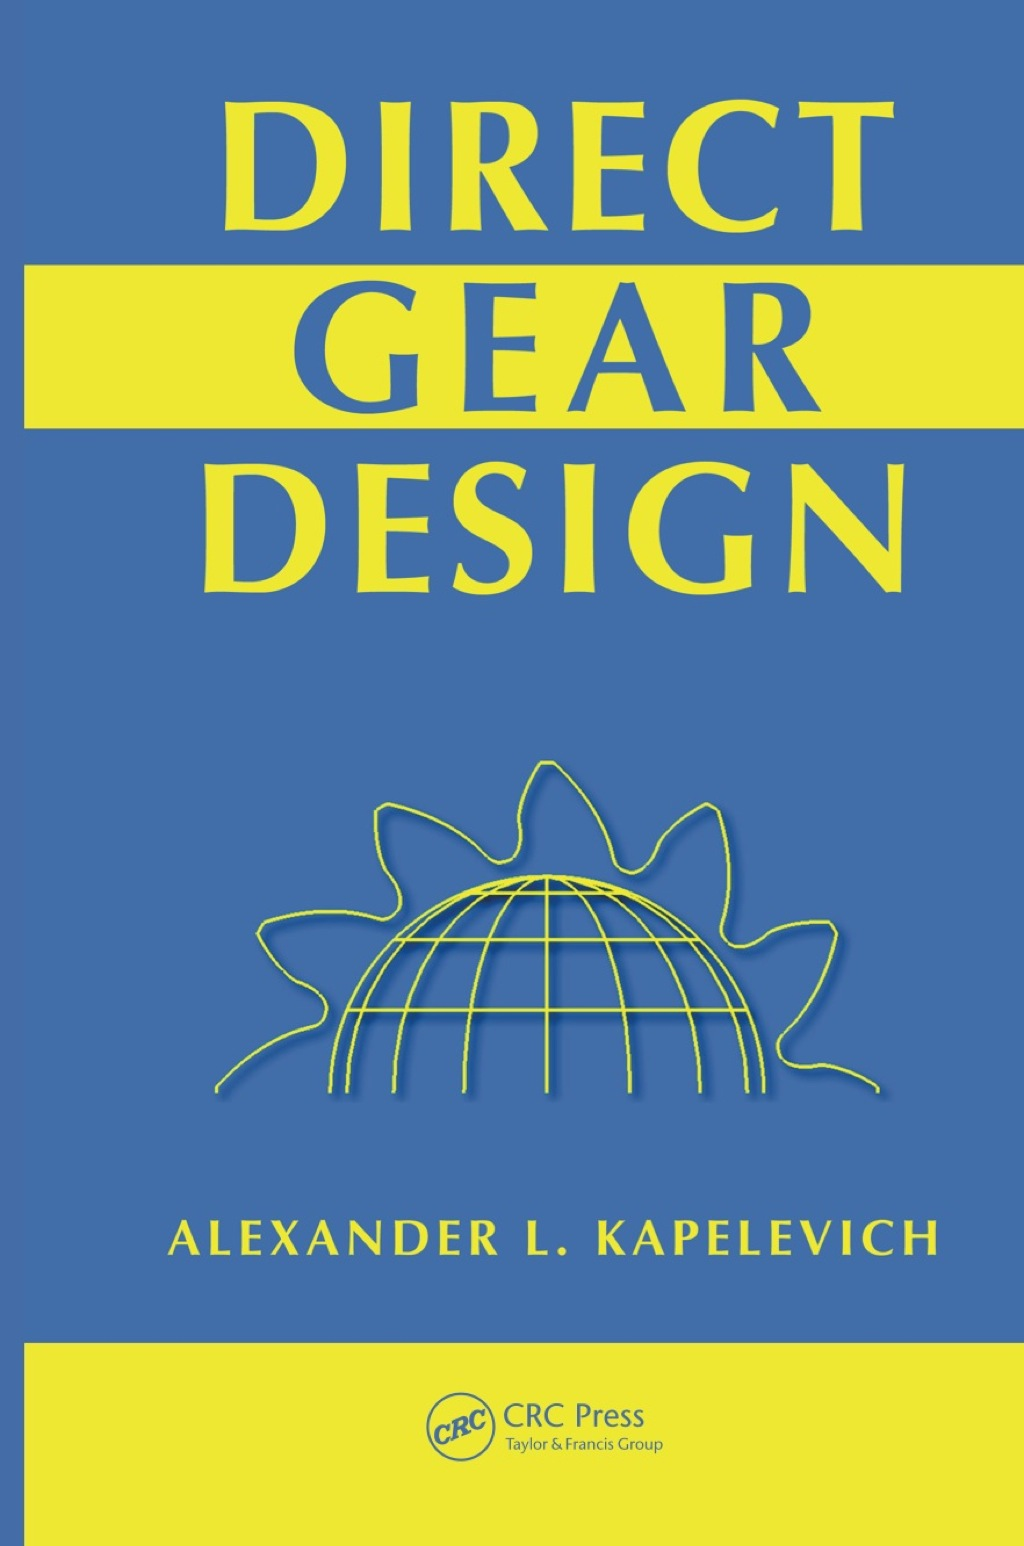 By Alexander L. Kapelevich PRINTISBN: 9781439876183 E-TEXT ISBN: 9781439876190 Edition: 1